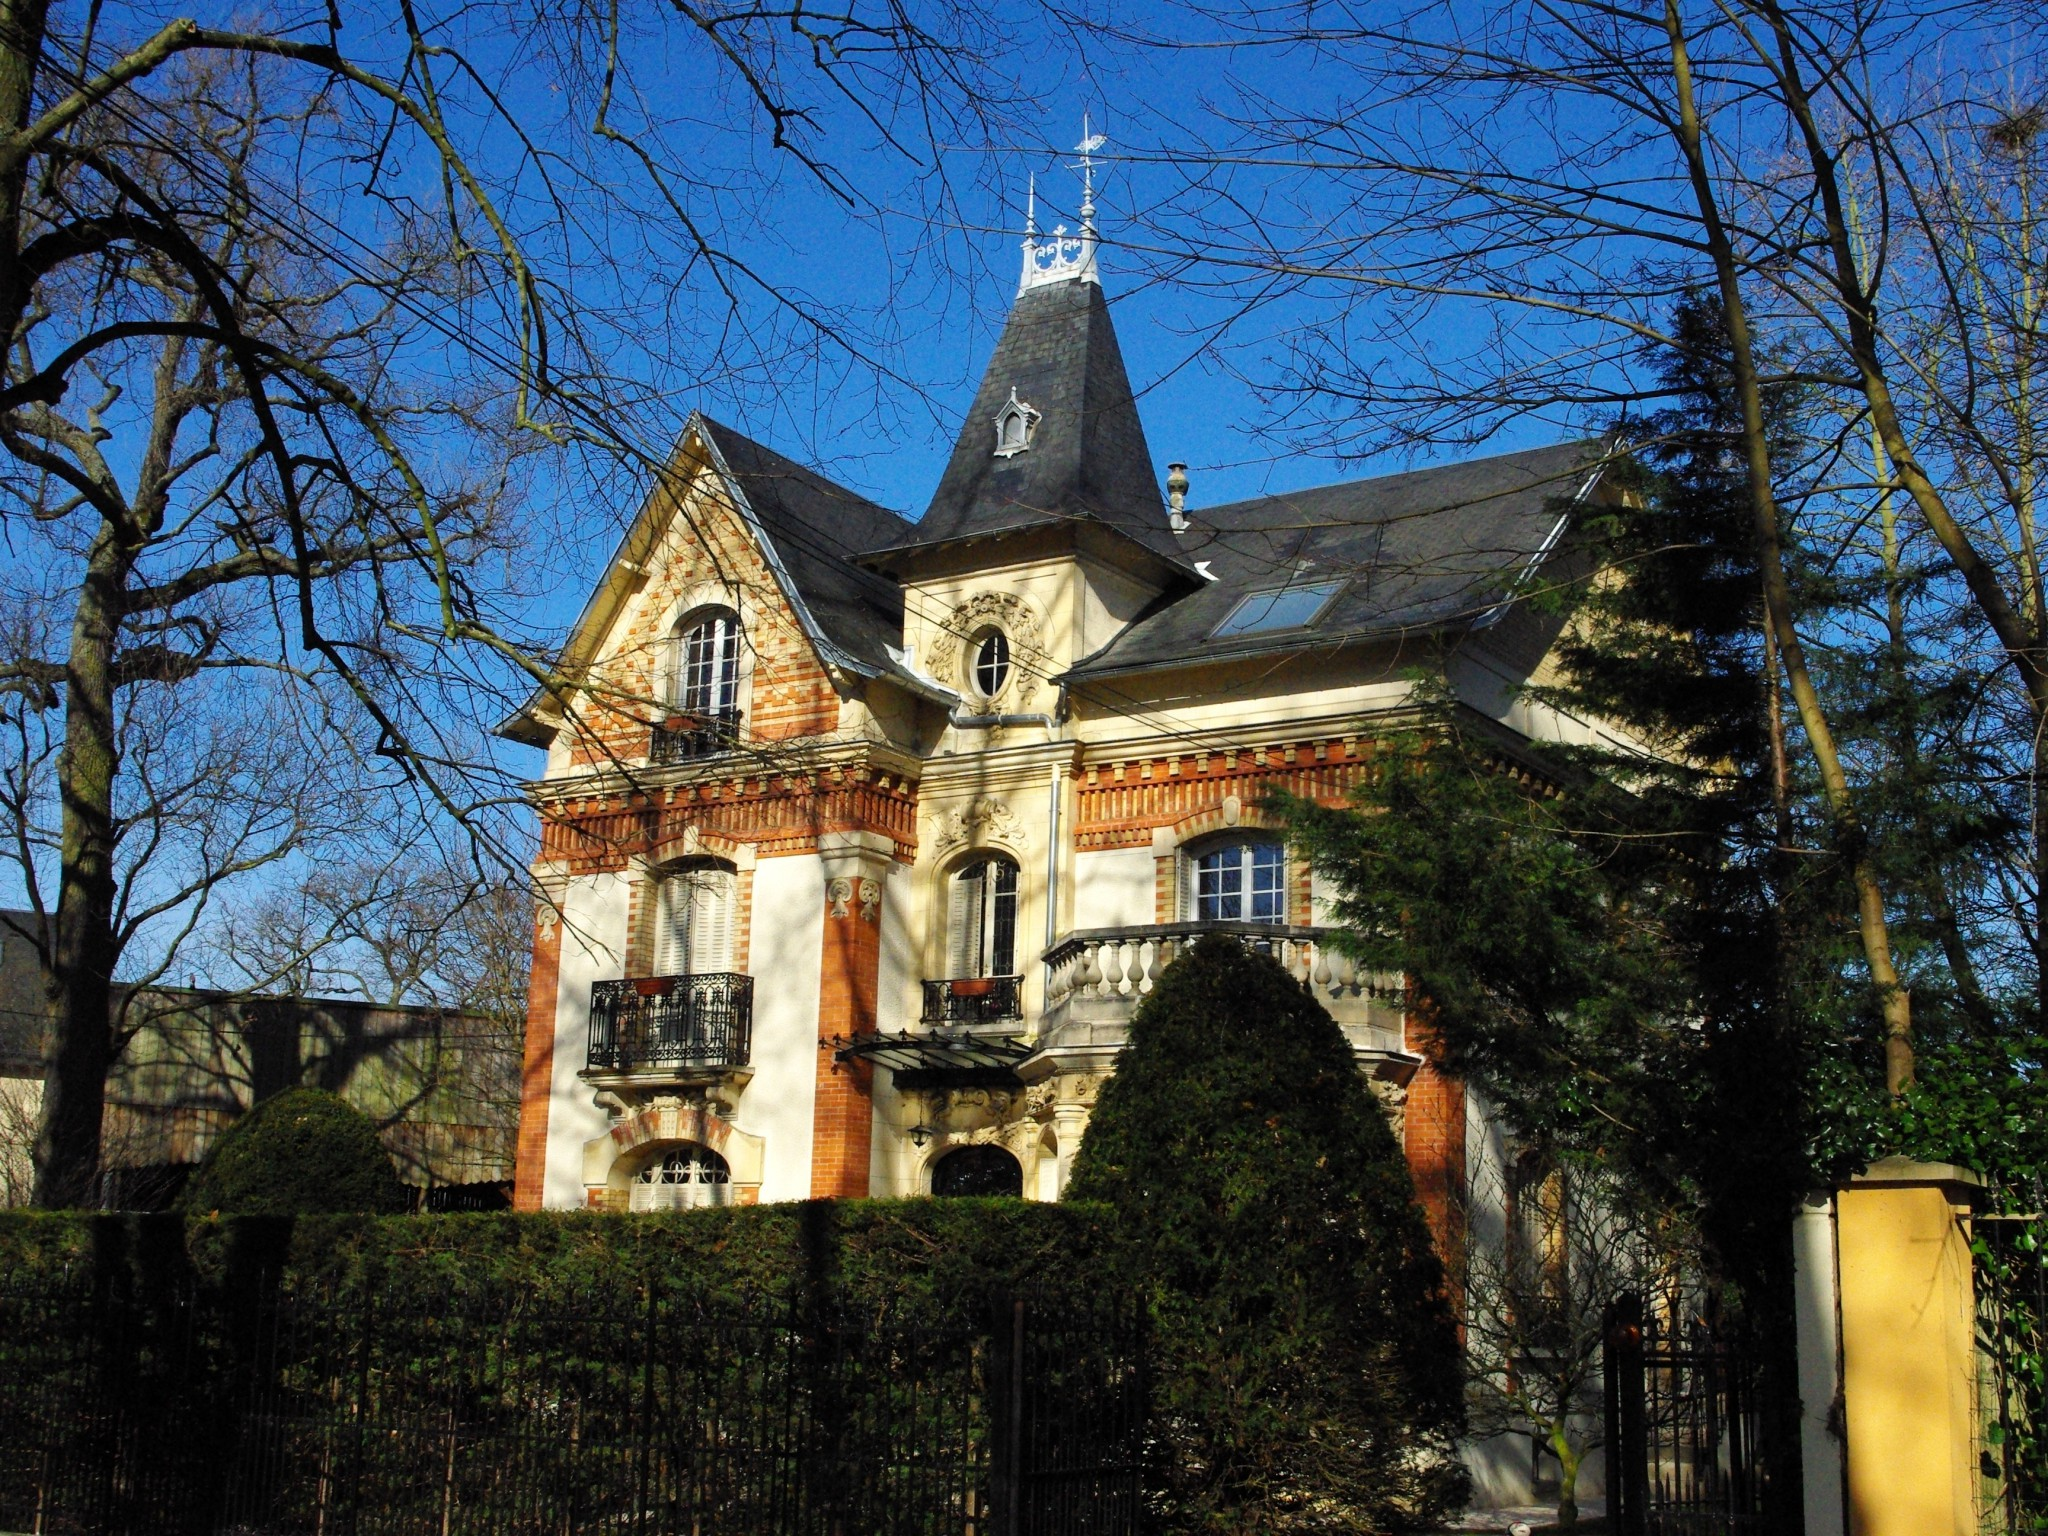 One of the many mansions built in the Park of Maisons-Laffitte © French Moments